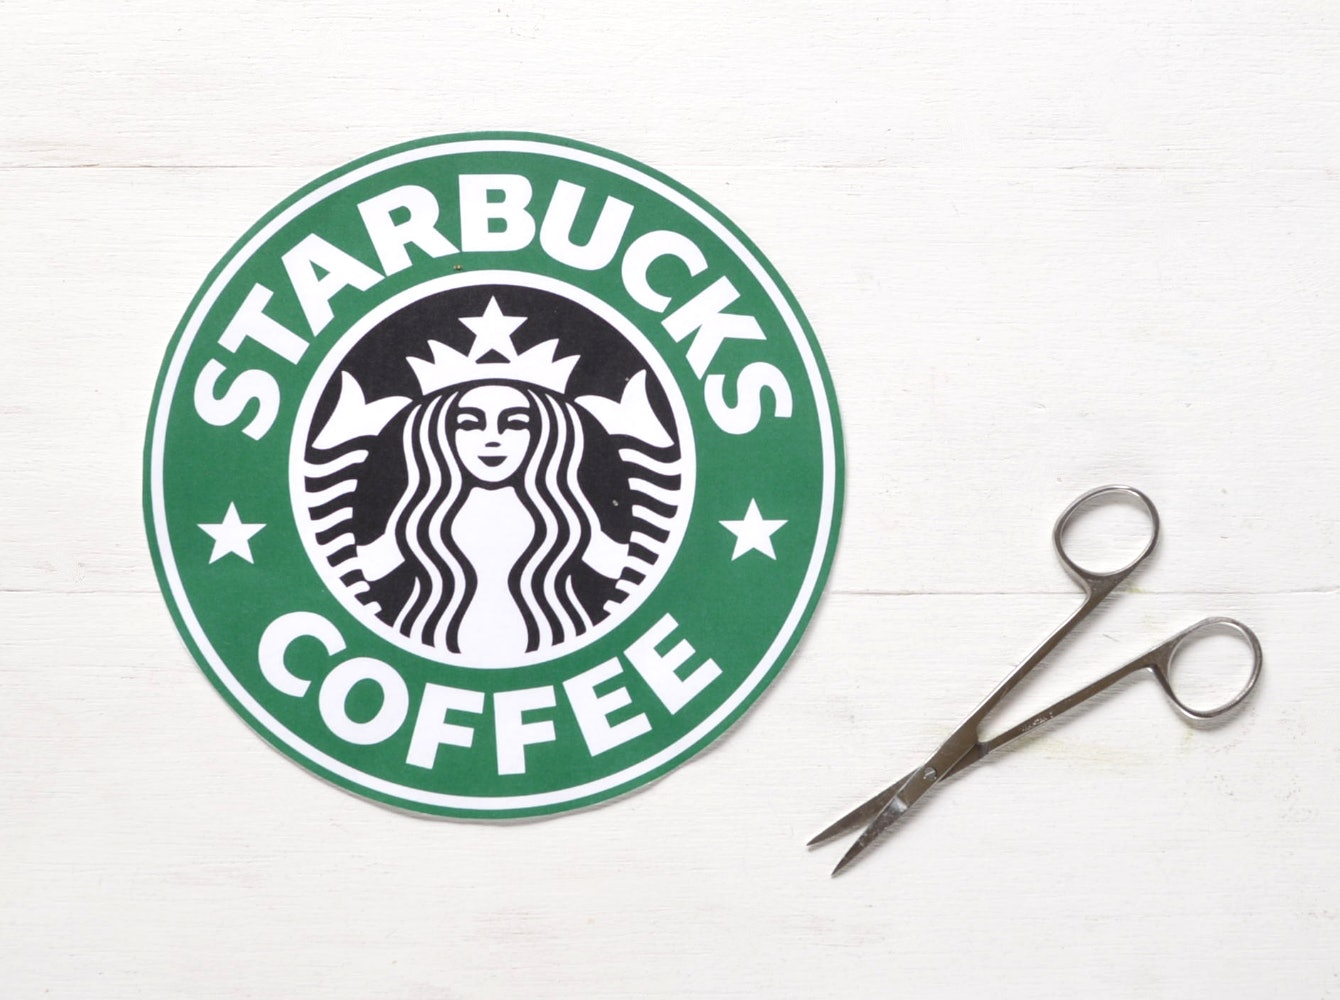 photograph regarding Printable Starbucks Logos called A Starbucks Halloween Gown For People today Who Enjoy